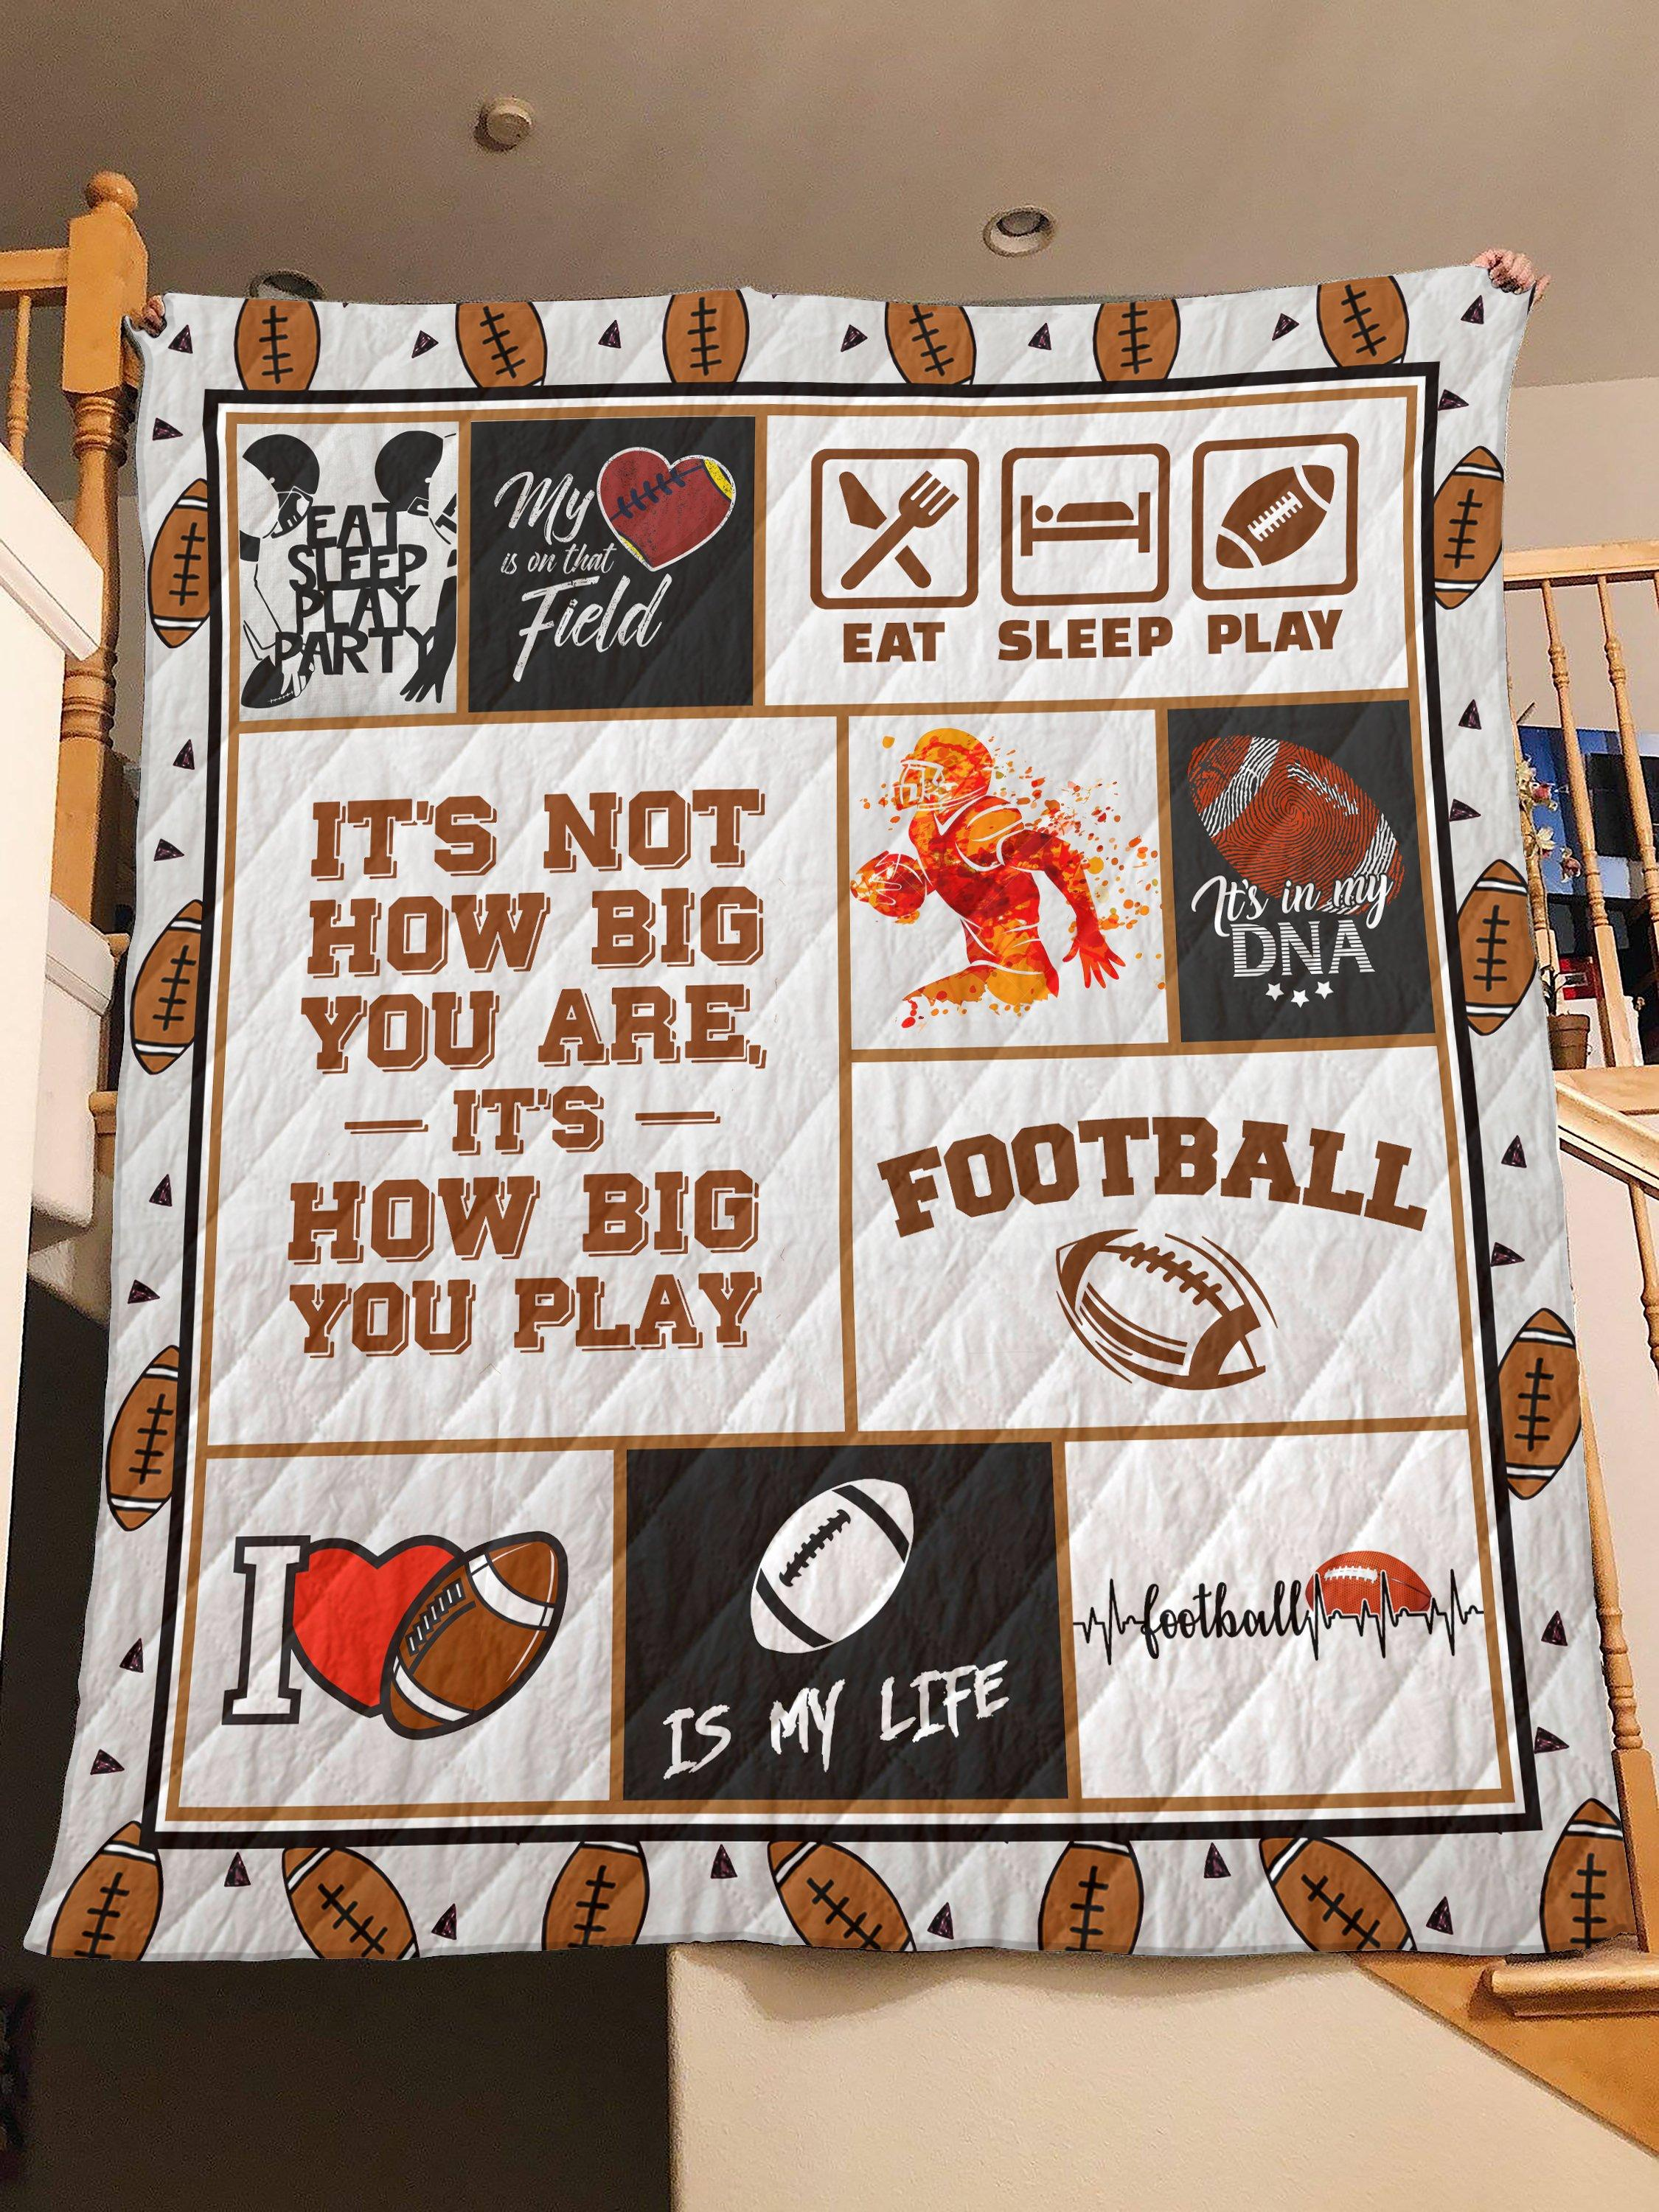 Football it's not how big you are it's how big you play quilt - twin